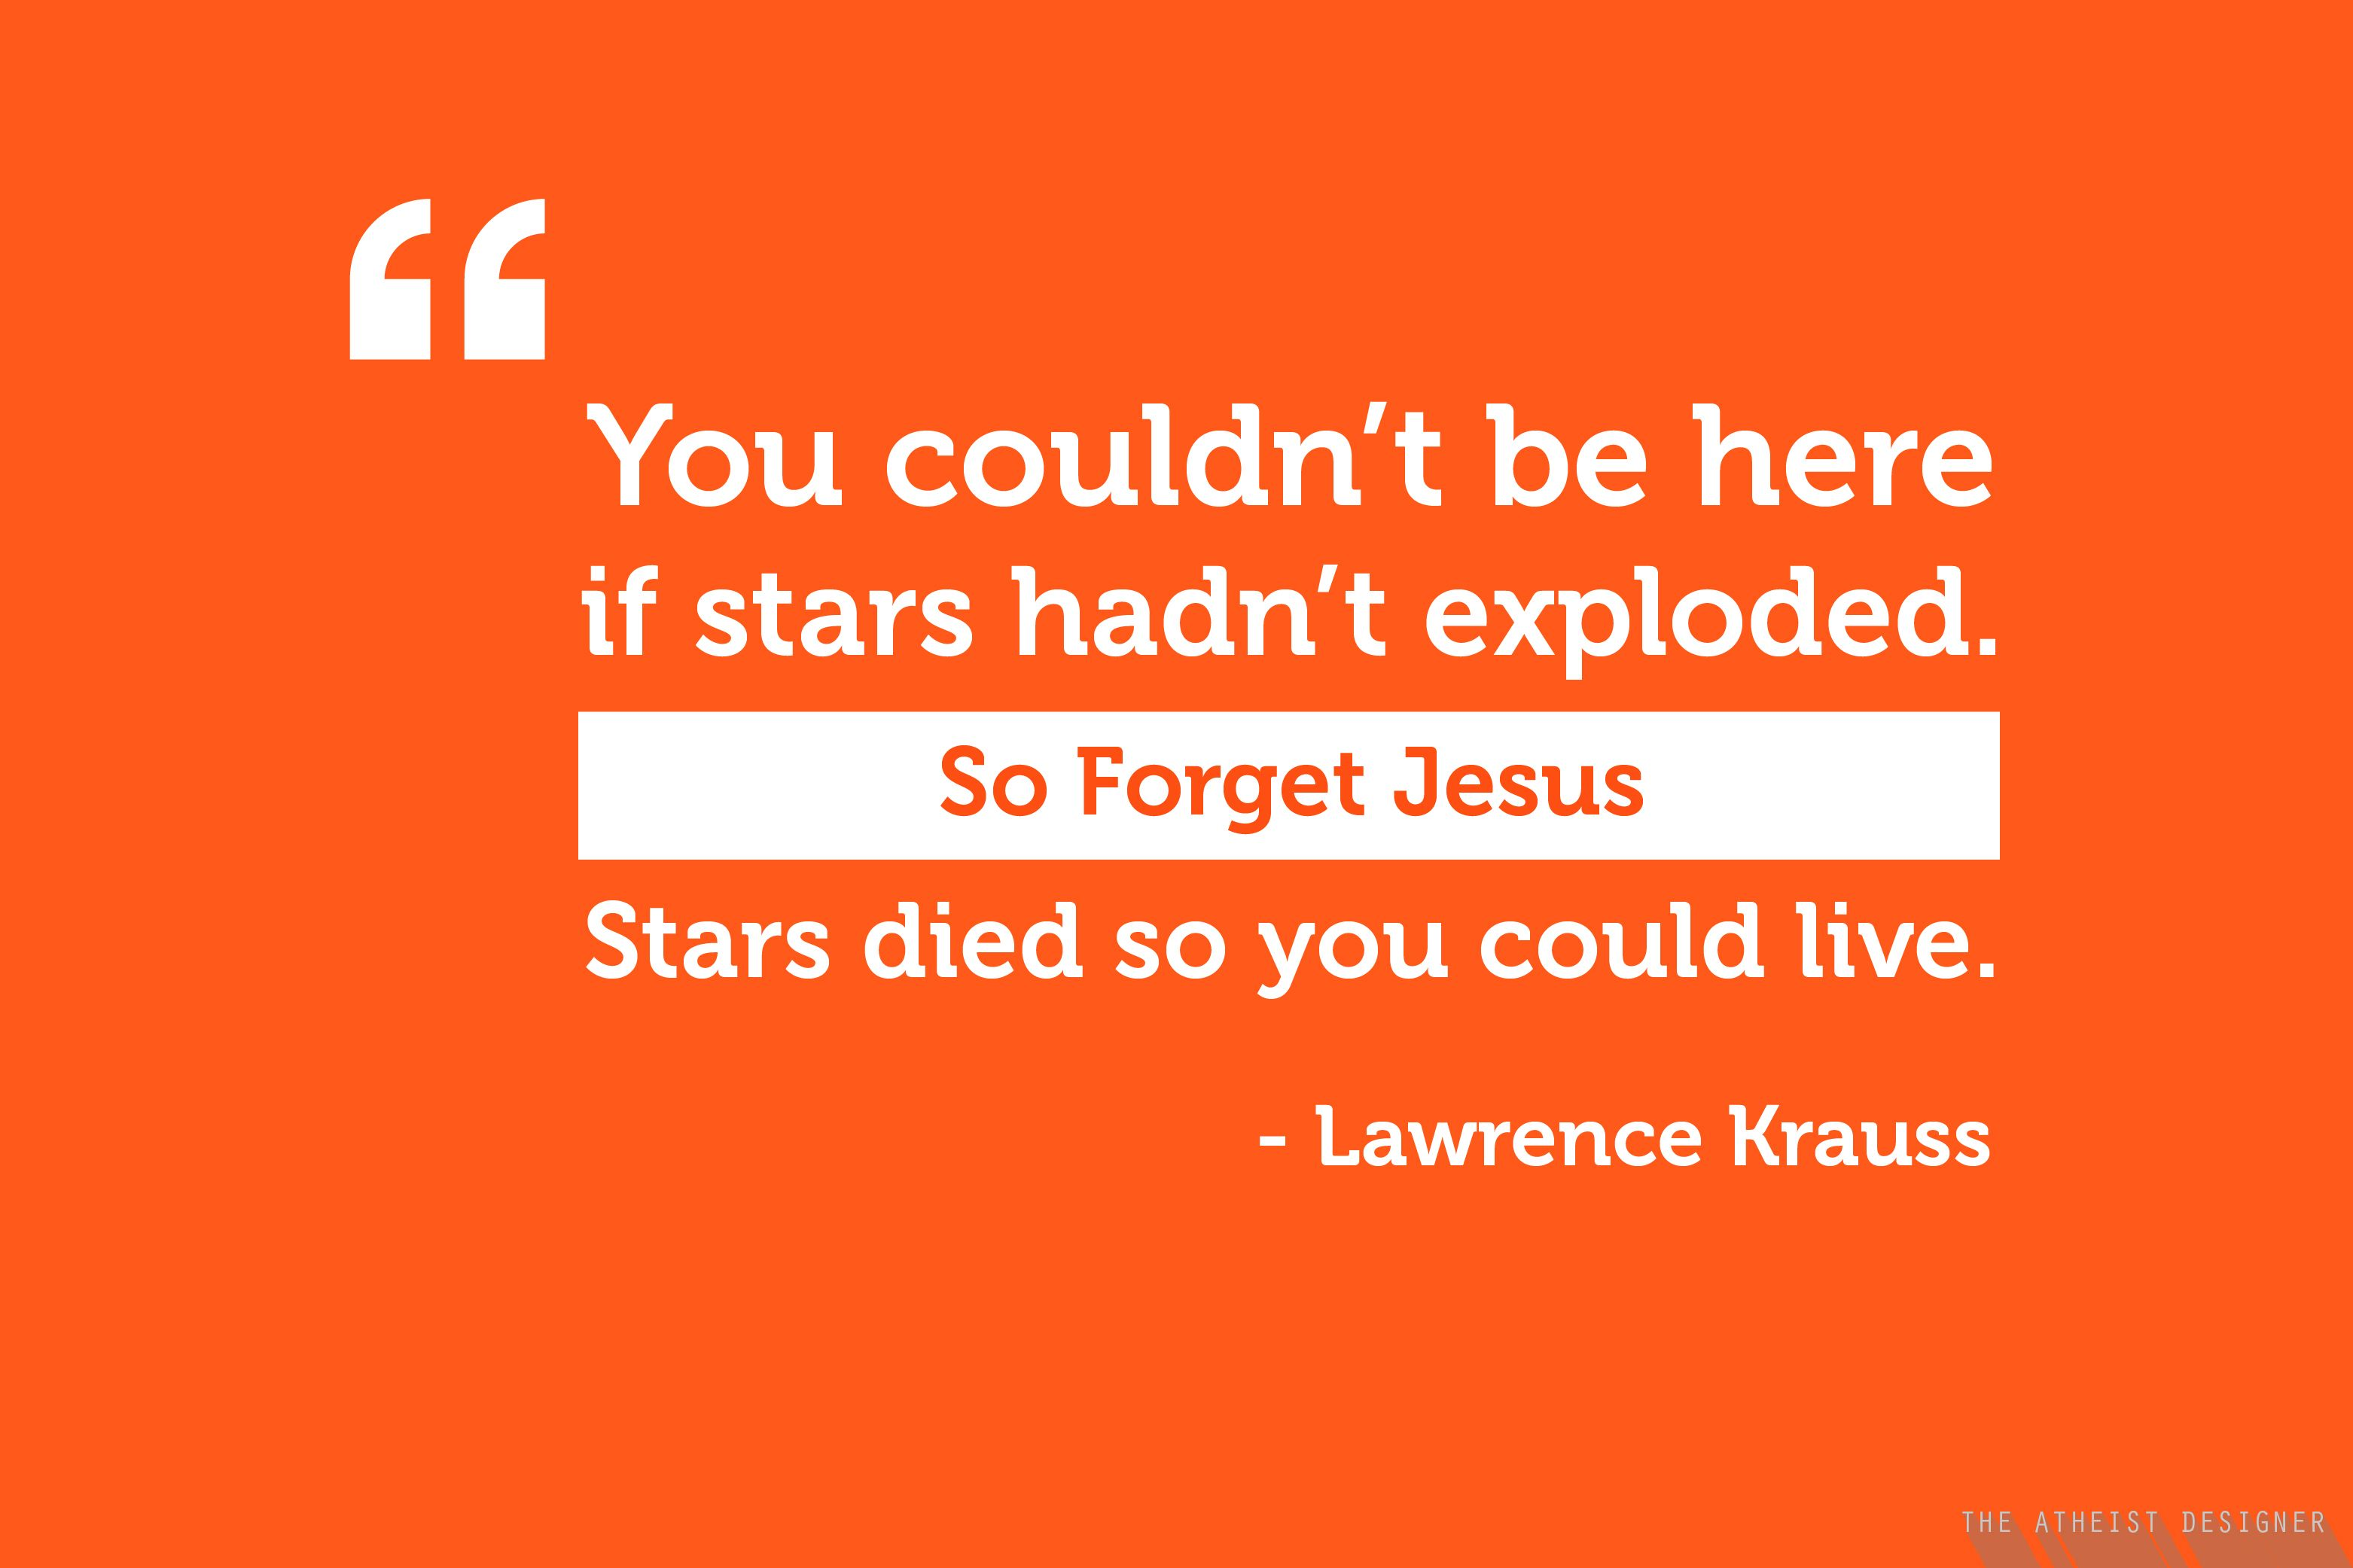 Pin by Atheist Designer on Quotes Lawrence krauss